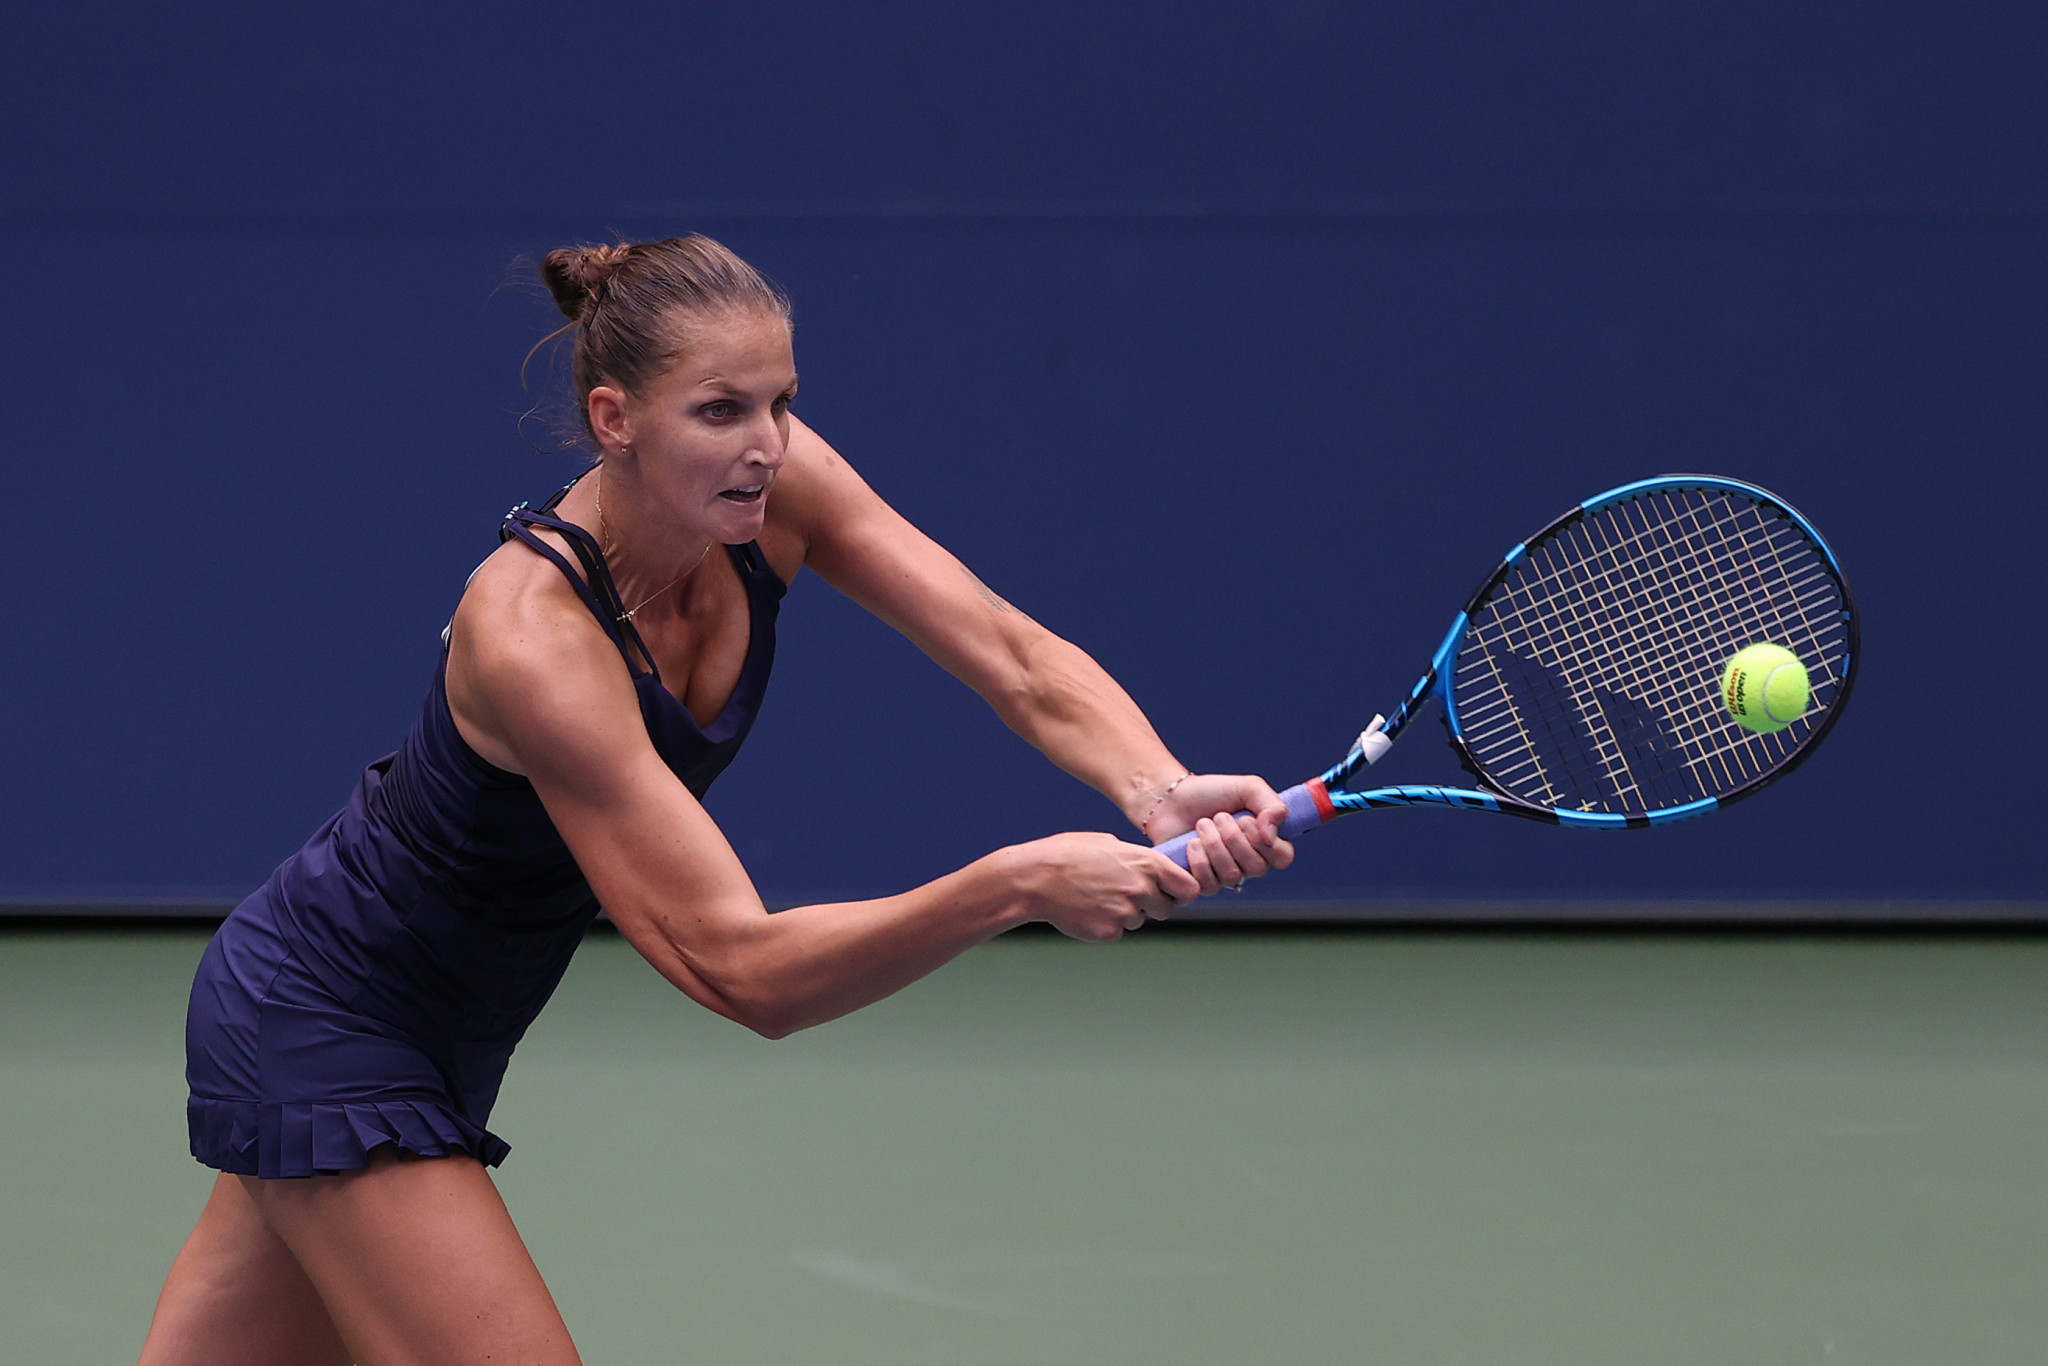 Women's top seed Plíšková records straight-sets win on opening day at US Open